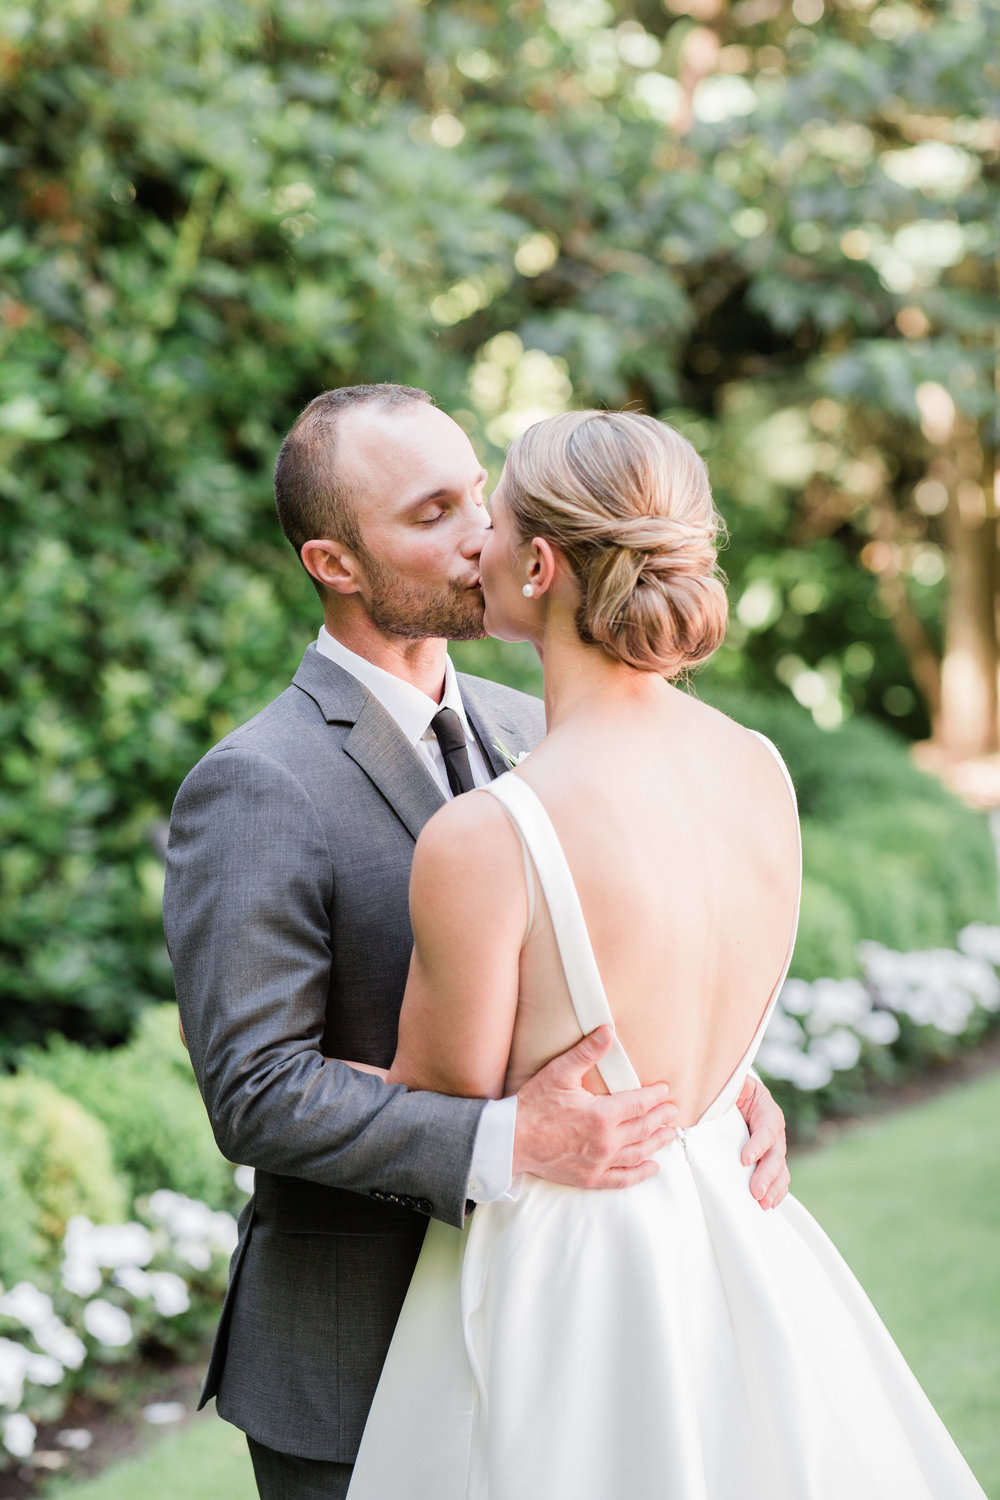 Bridalbliss.com | Portland Wedding | Oregon Event Planning and Design | McKenna Rachelle Photography